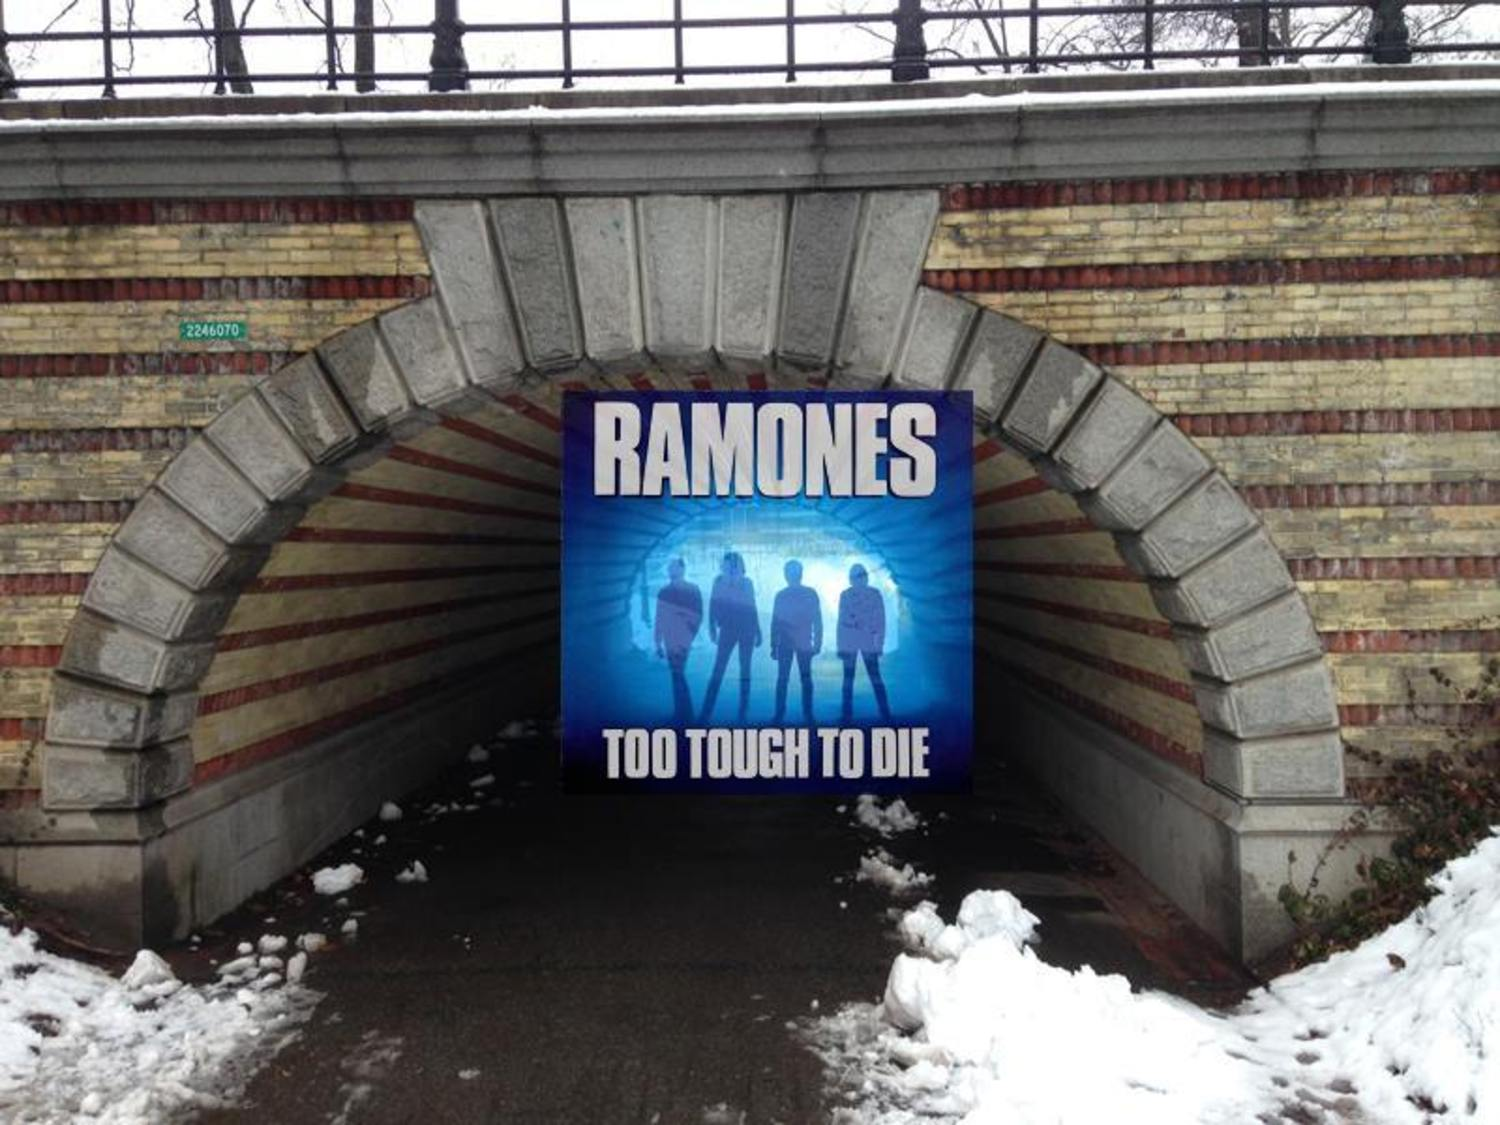 "TOO TOUGH TO DIE by THE RAMONES (1984, Sire). . .Photo by George DuBose. . .Location: underneath Playmates Arch, next to the Carousel in Manhattan's Central Park  (near where Center Drive meets the 65th St. Traverse). . .The album was the Ramones eighth studio album and the first to feature Richie Ramone on drums. . .According to Wikipedia: ""The photograph on the album cover, which features silhouettes of the band members, resulted from a ""lucky accident"" after photographer George DuBose's camera malfunctioned"" . . .Click the following link to be taken inside Playmates Arch tunnel, with its distinctive yellow-and-red brick stripes, via Google Street Views: http://bit.ly/2bIjvKE"